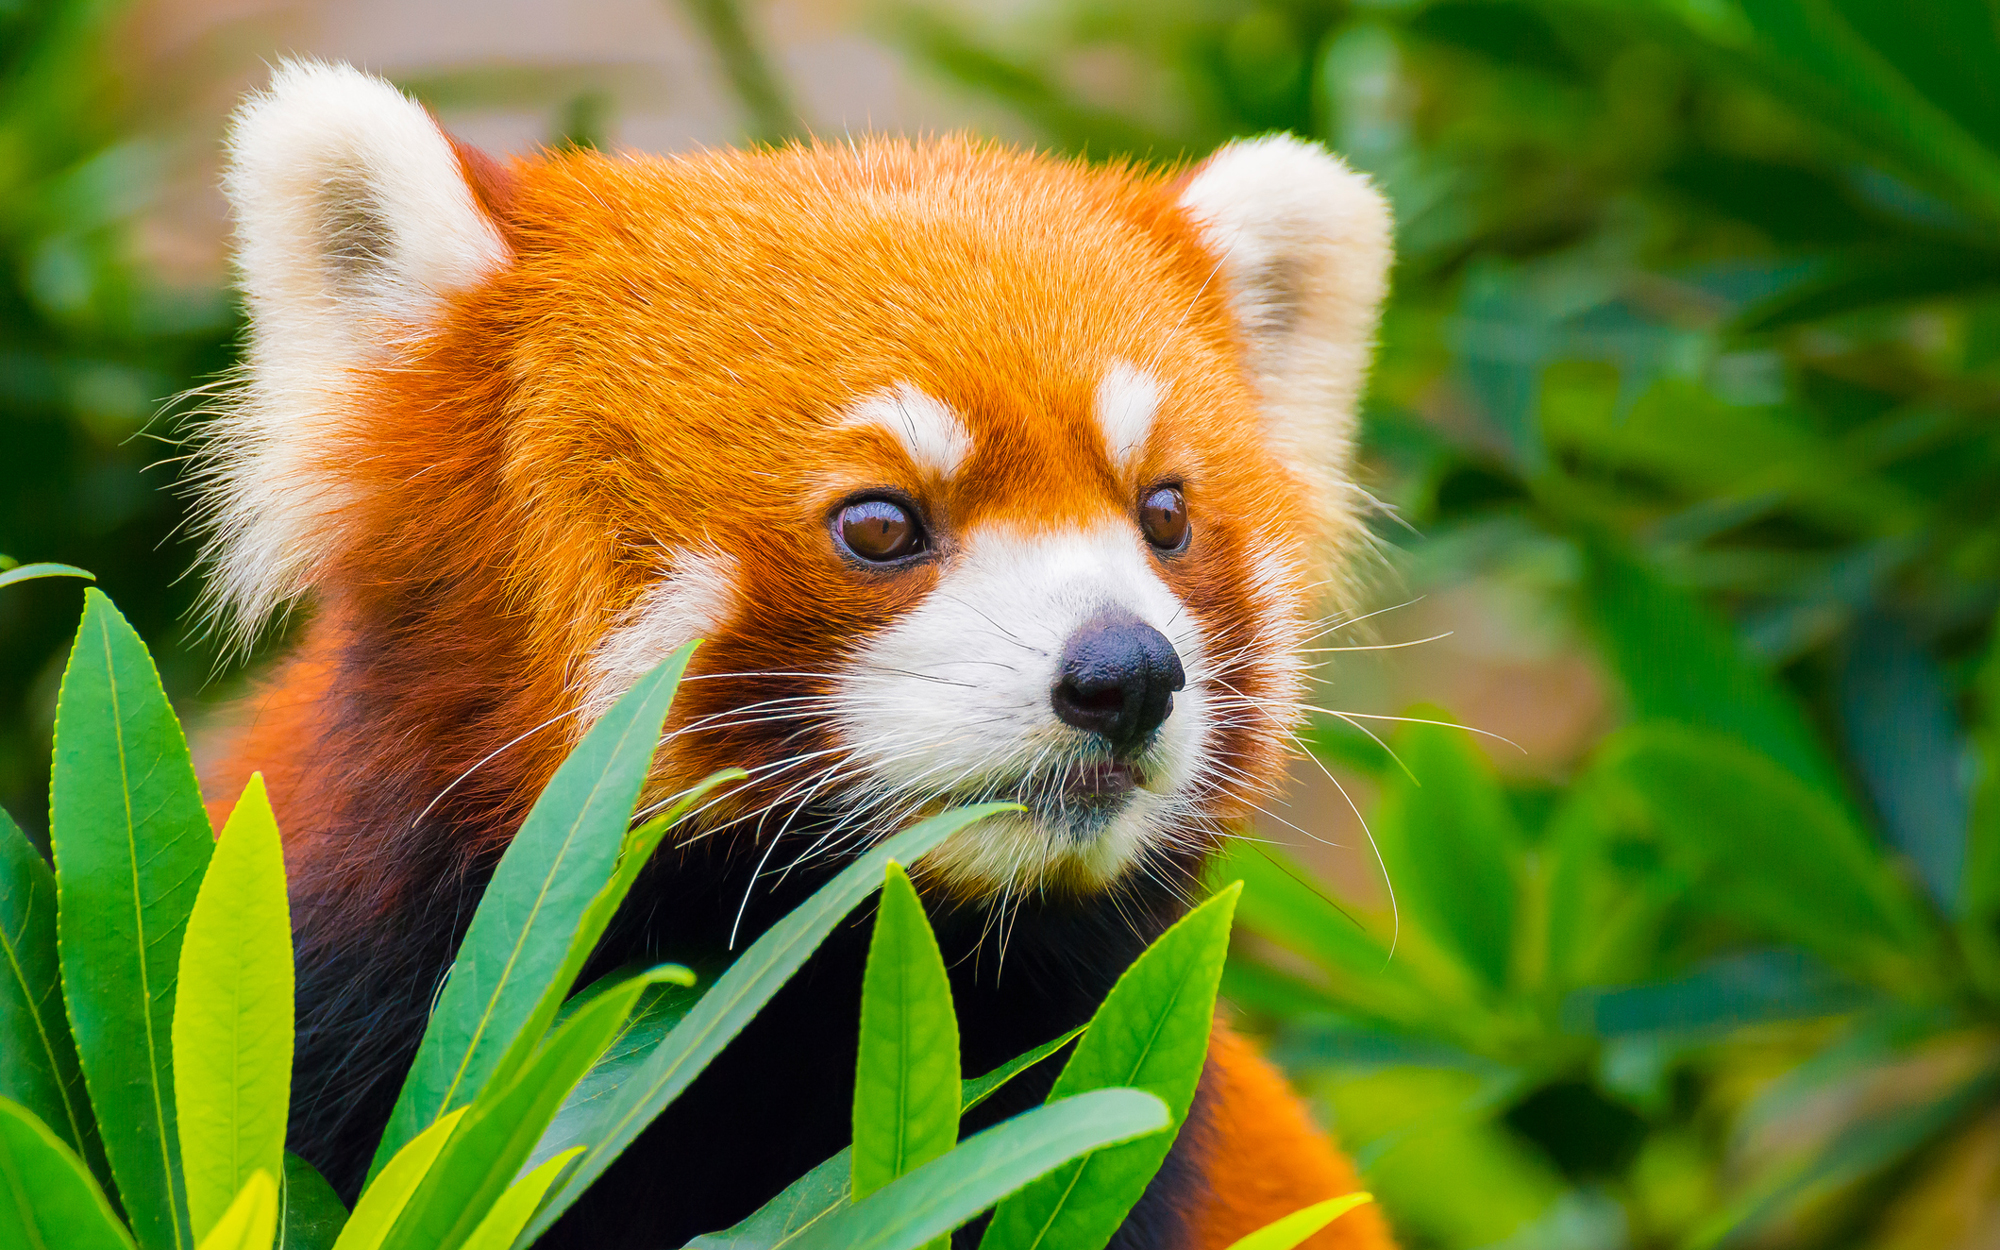 Red panda escaped the zoo, took an 8-month solo trip